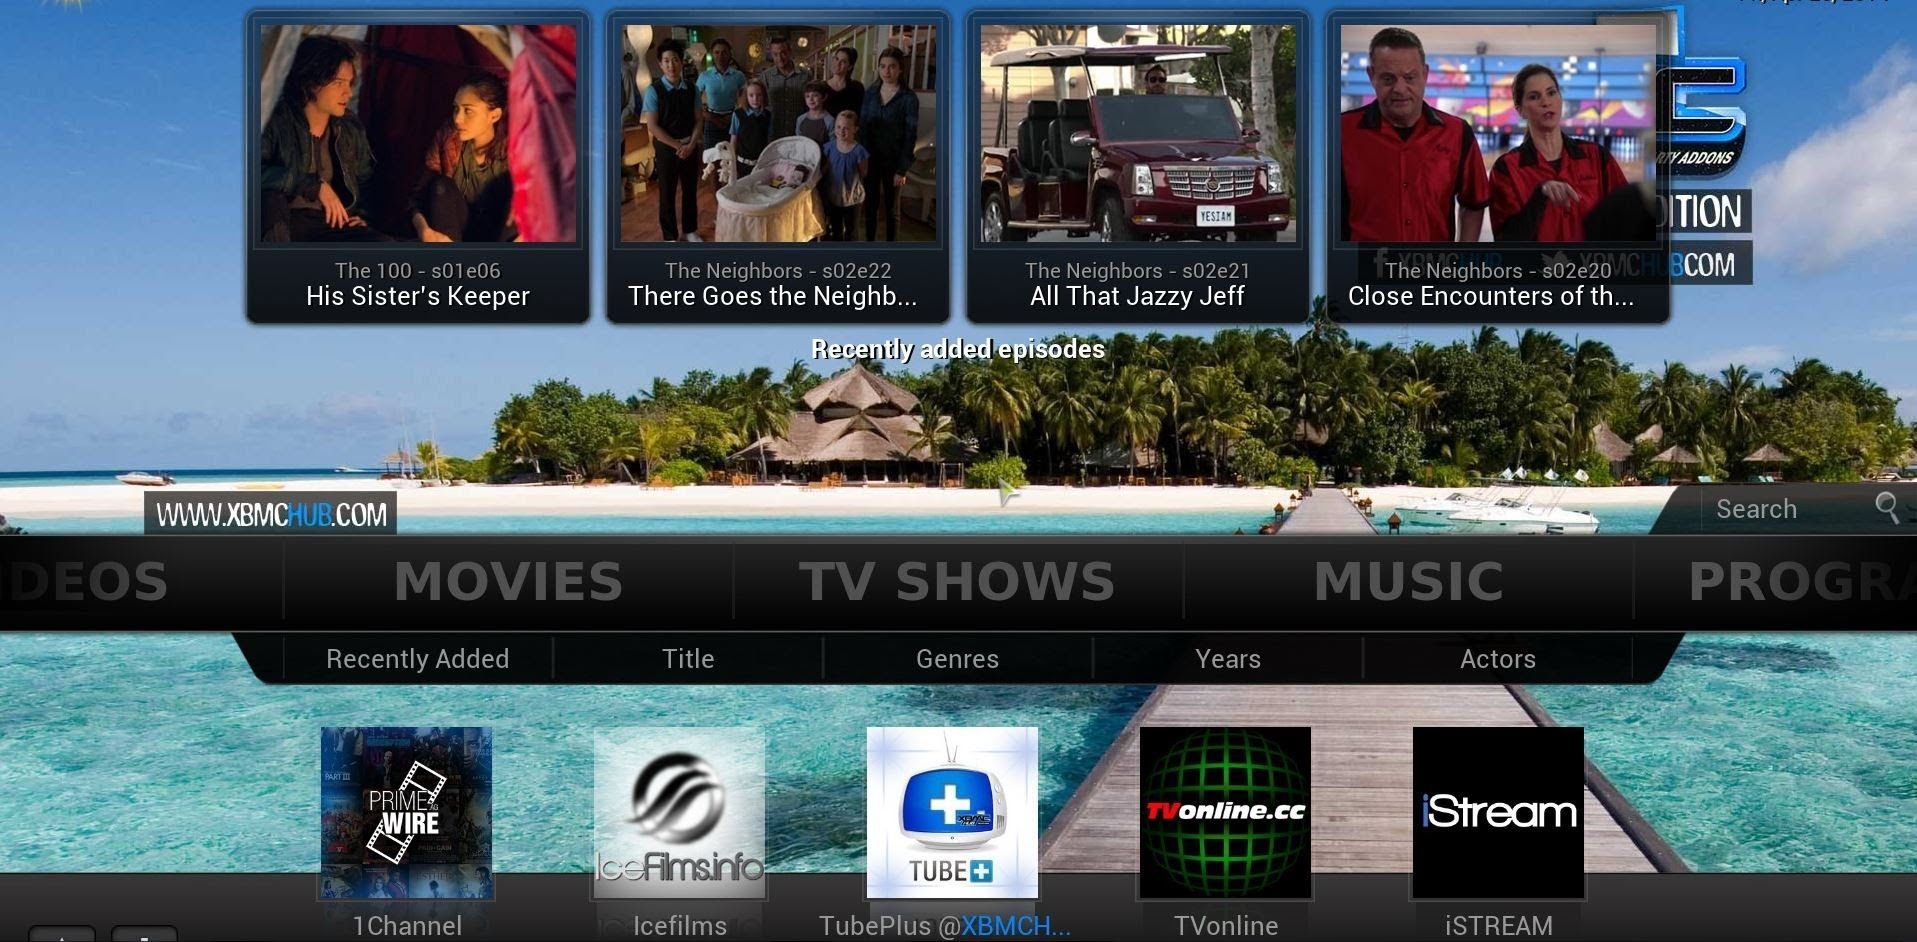 XBMC - Download content and setup Libraries | Marty's stuff